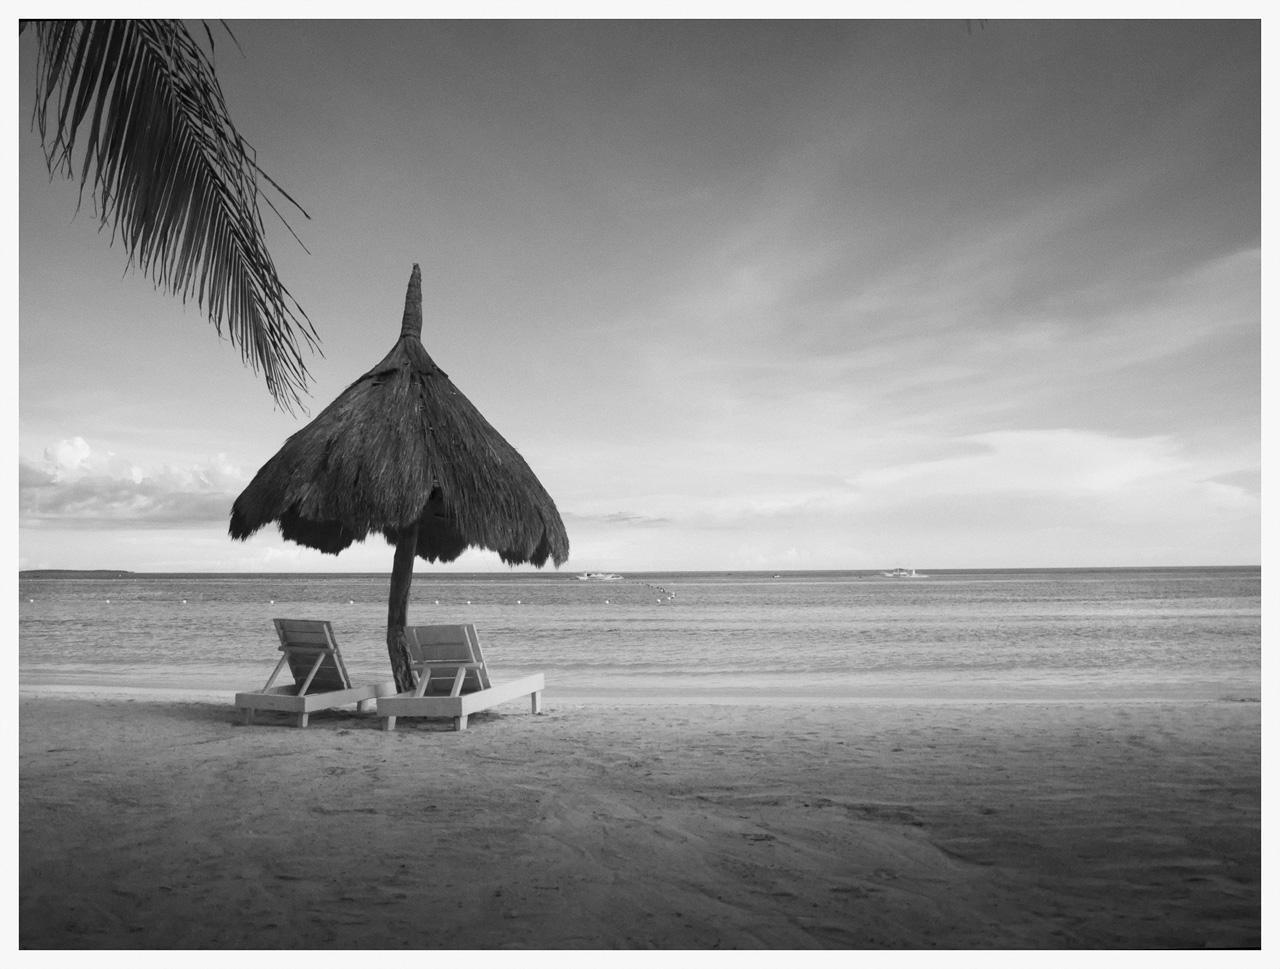 Beach Panglao in BW